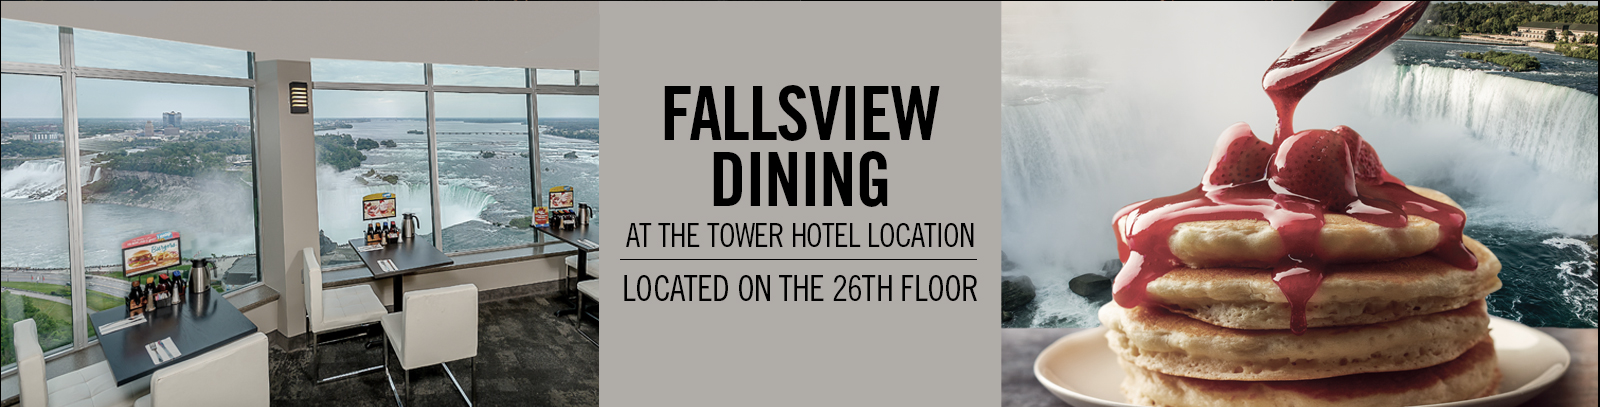 Fallsview Dining at the Tower Hotel Location - IHOP Restaurant Niagara Falls